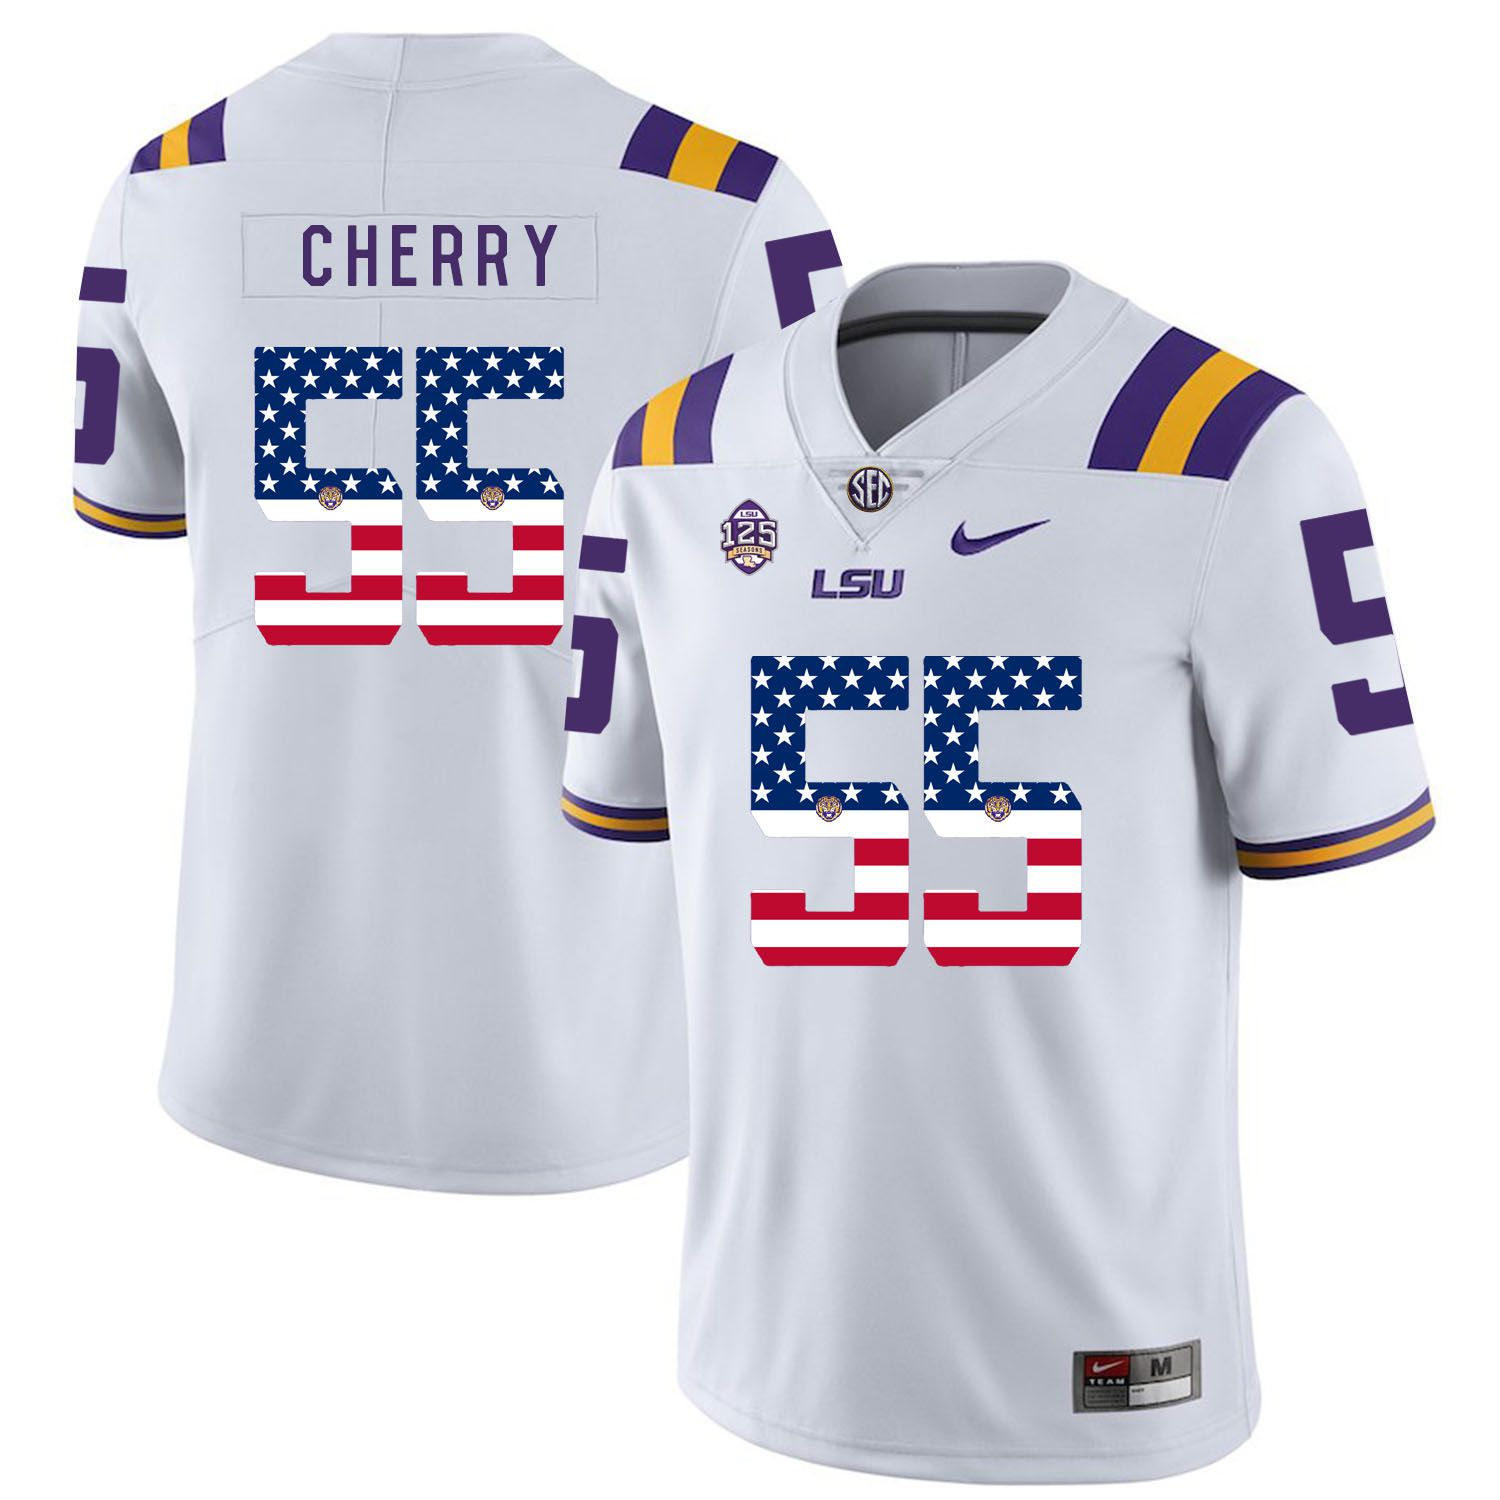 Men LSU Tigers 55 Cherry White Flag Customized NCAA Jerseys